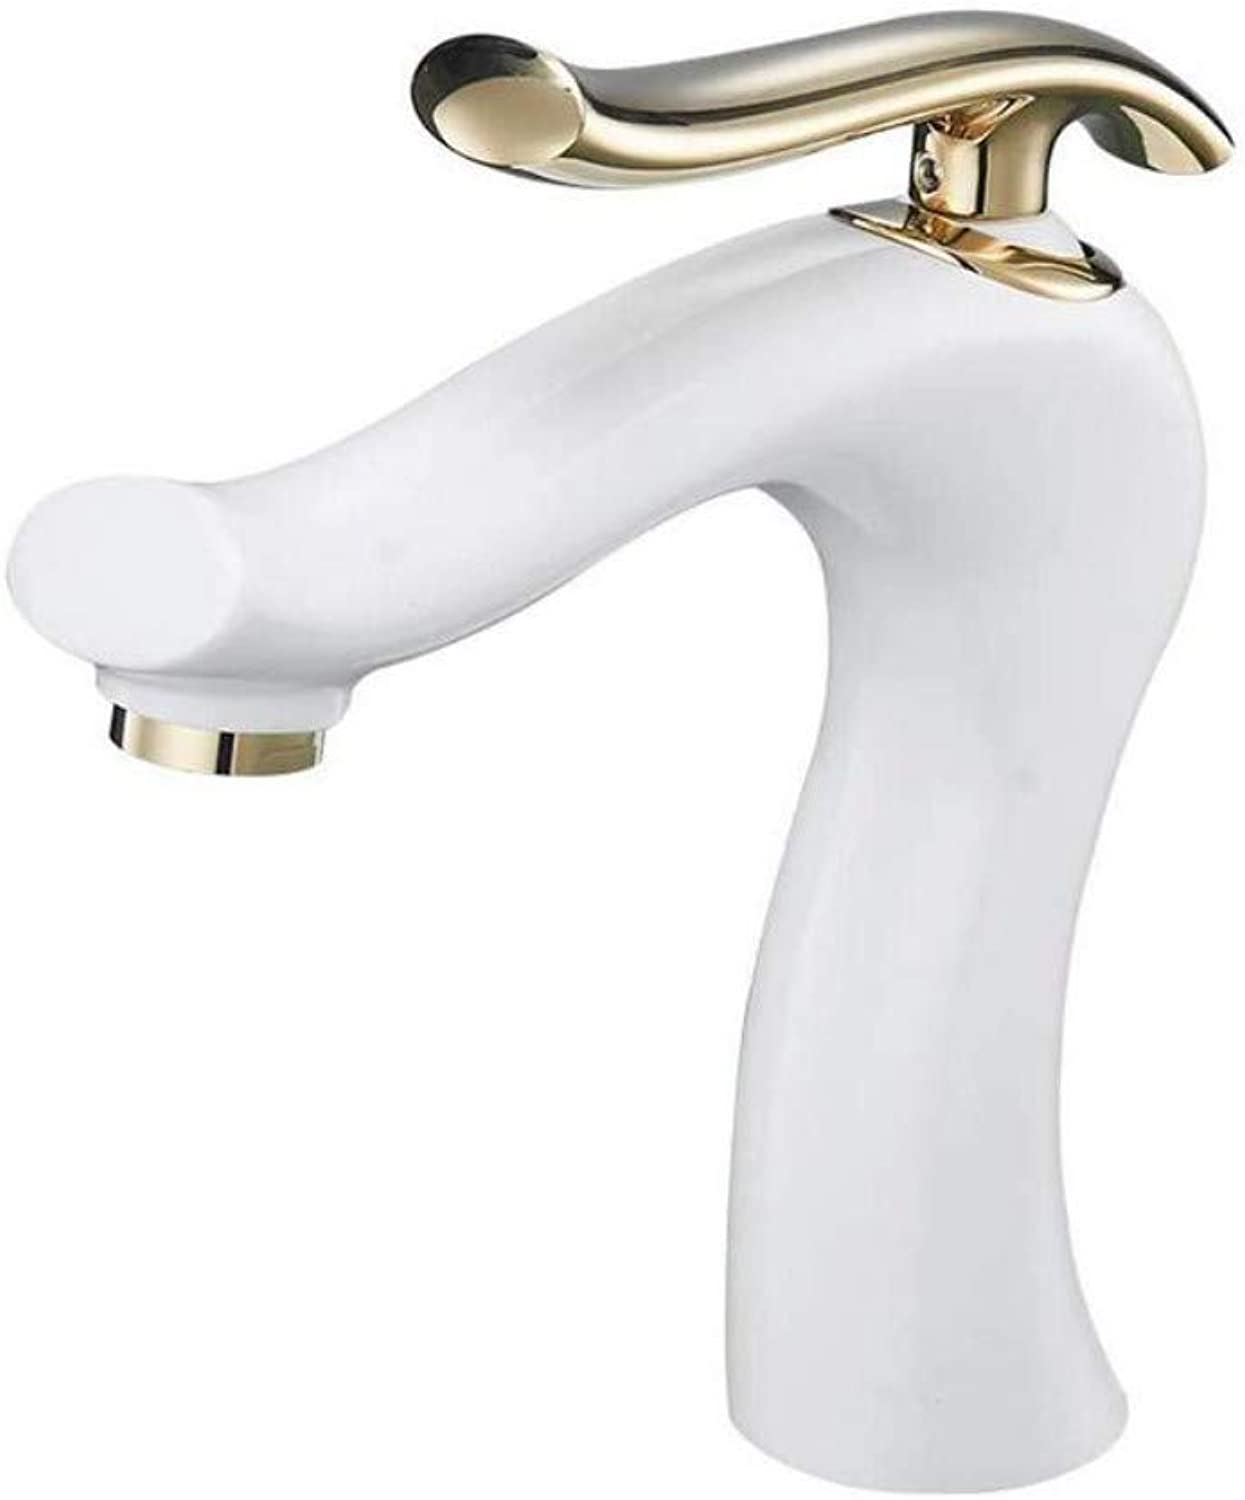 Taps Kitchen Sink Faucet Single Handle Taps Kitchen Basin Faucet Tap Basin Mixer gold Sink for Bathroom White